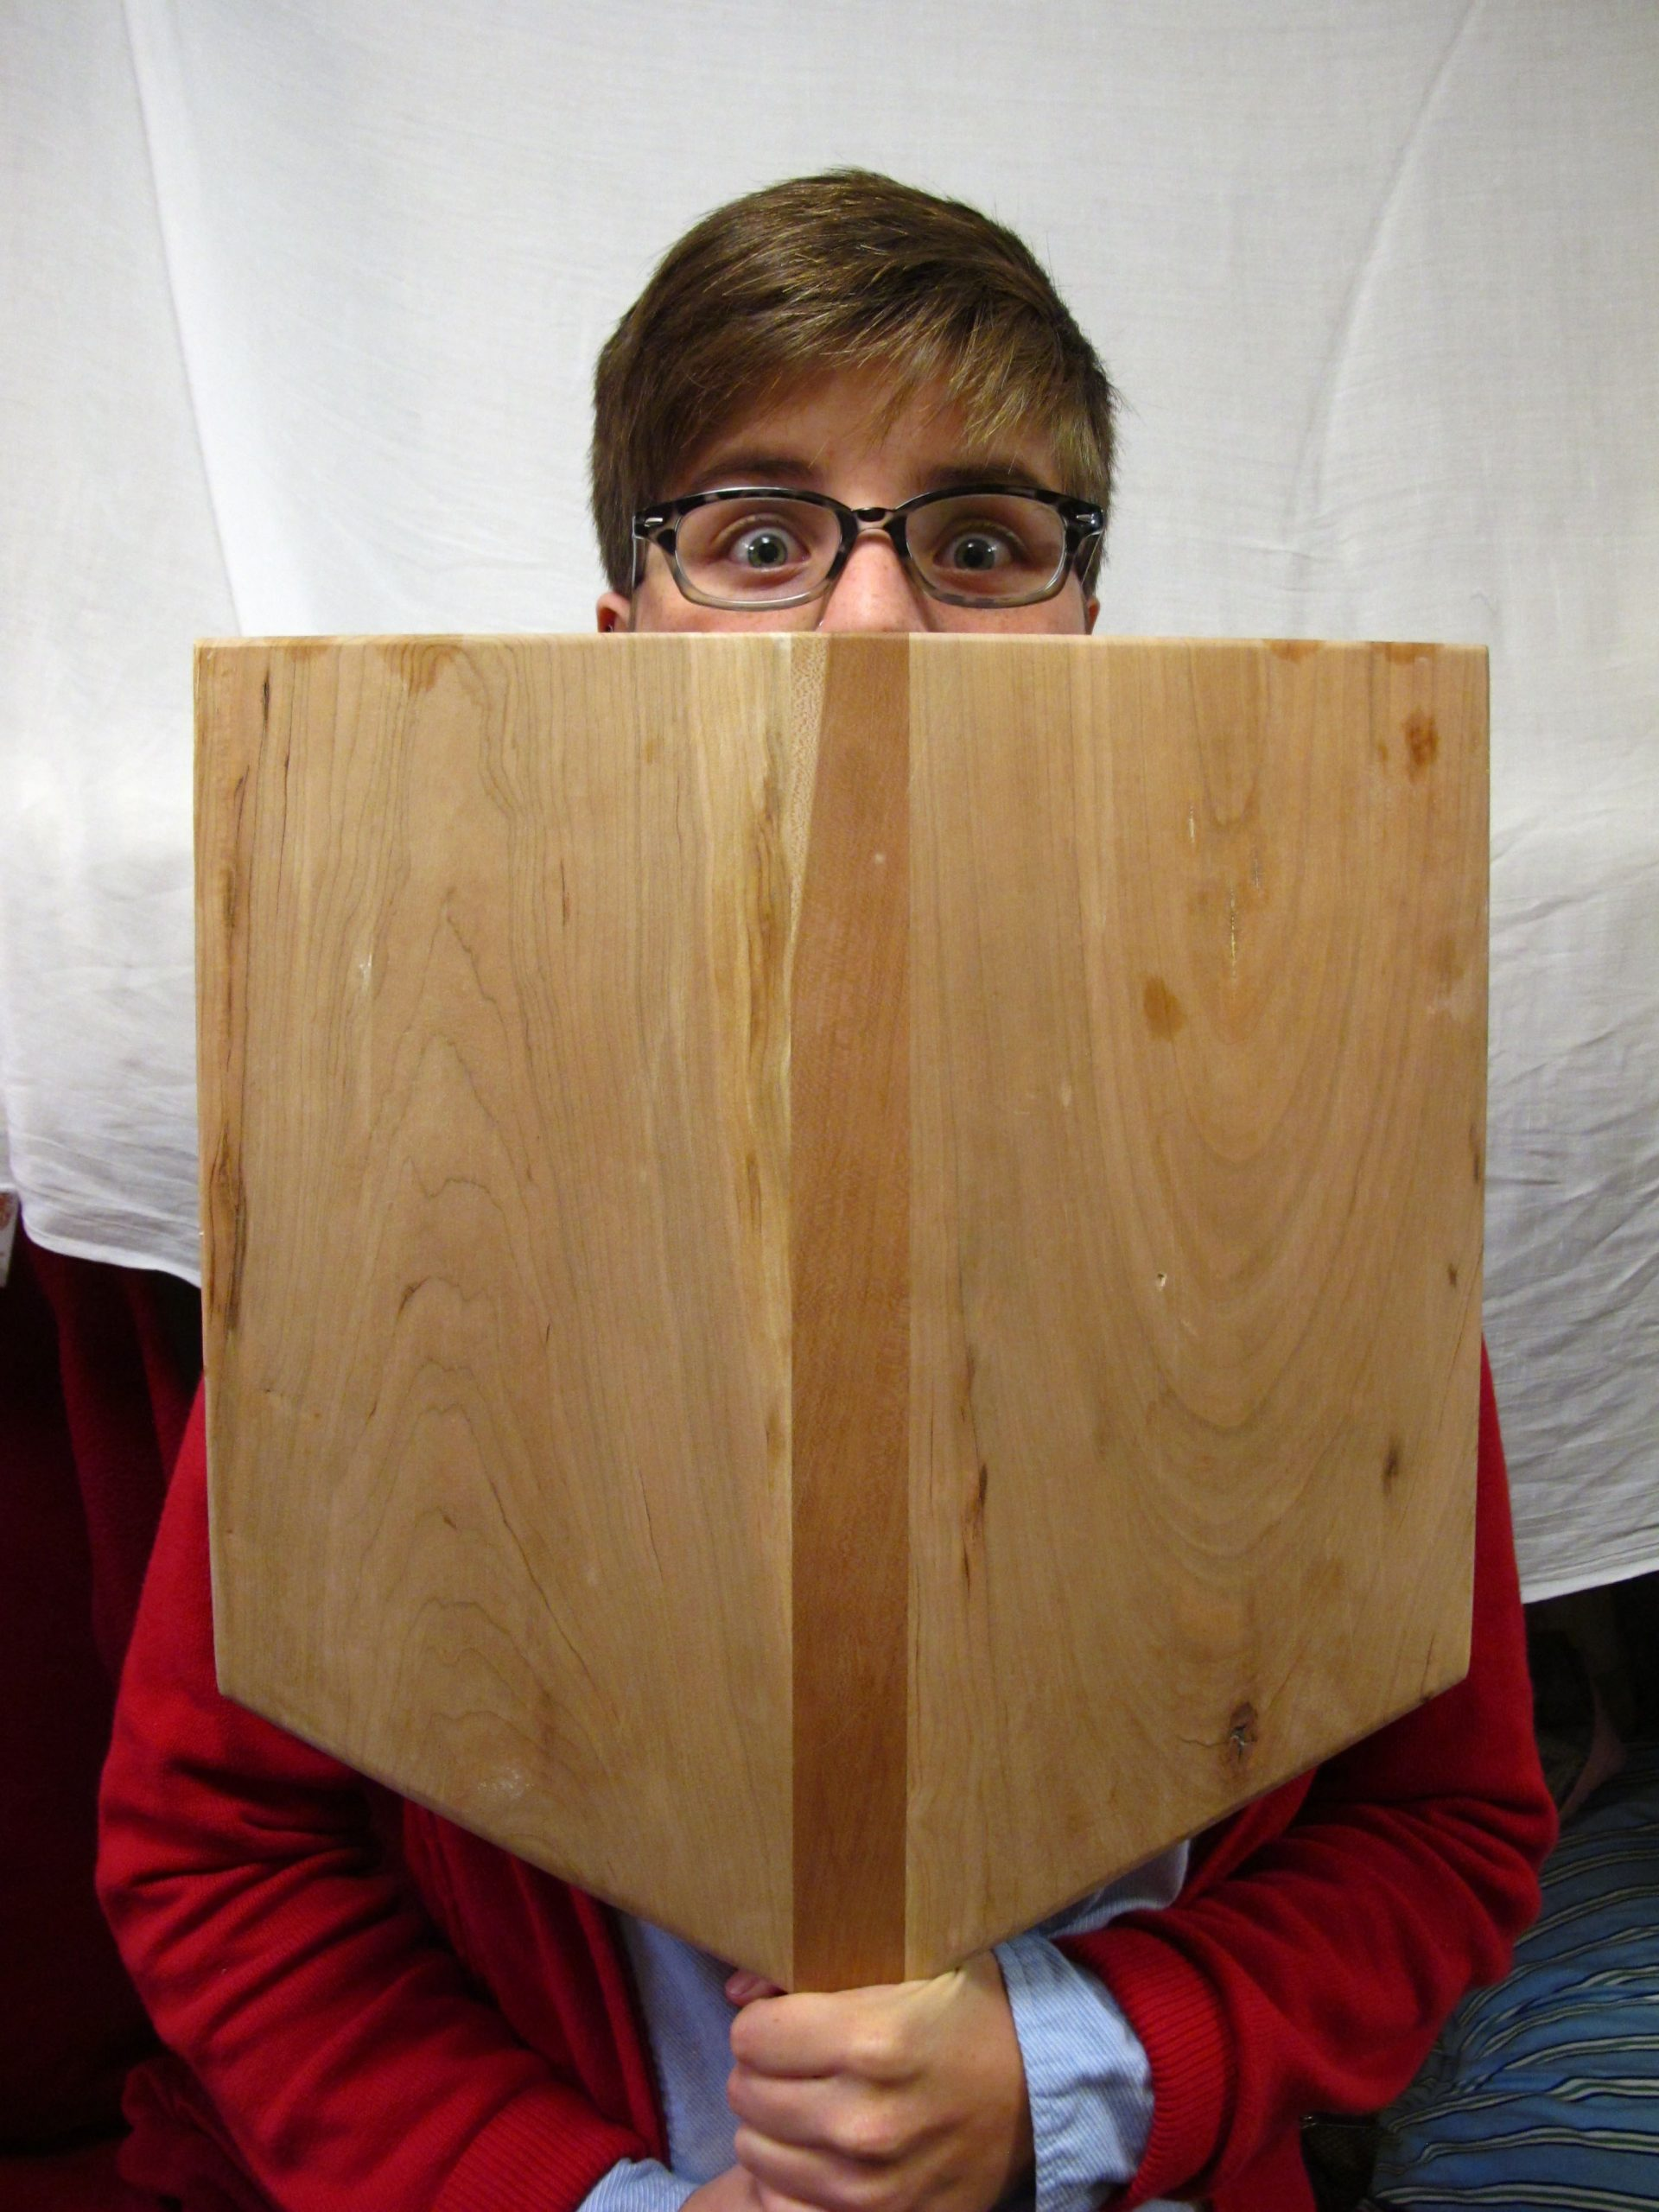 Jess Sprunger poses for a photo with her handmade wooden pizza peel